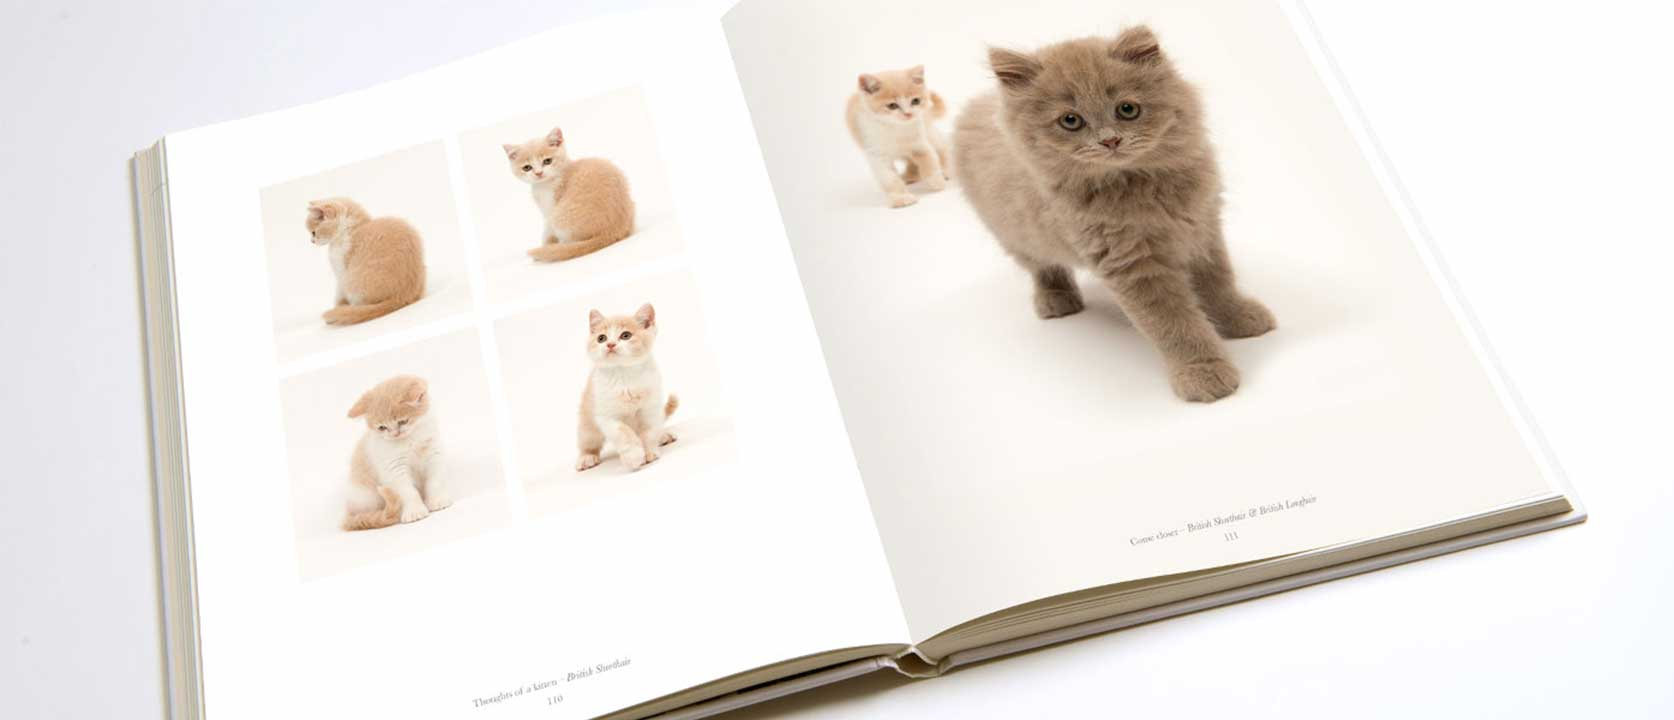 Open Pure Cat Book showing pictures of cute little kittens